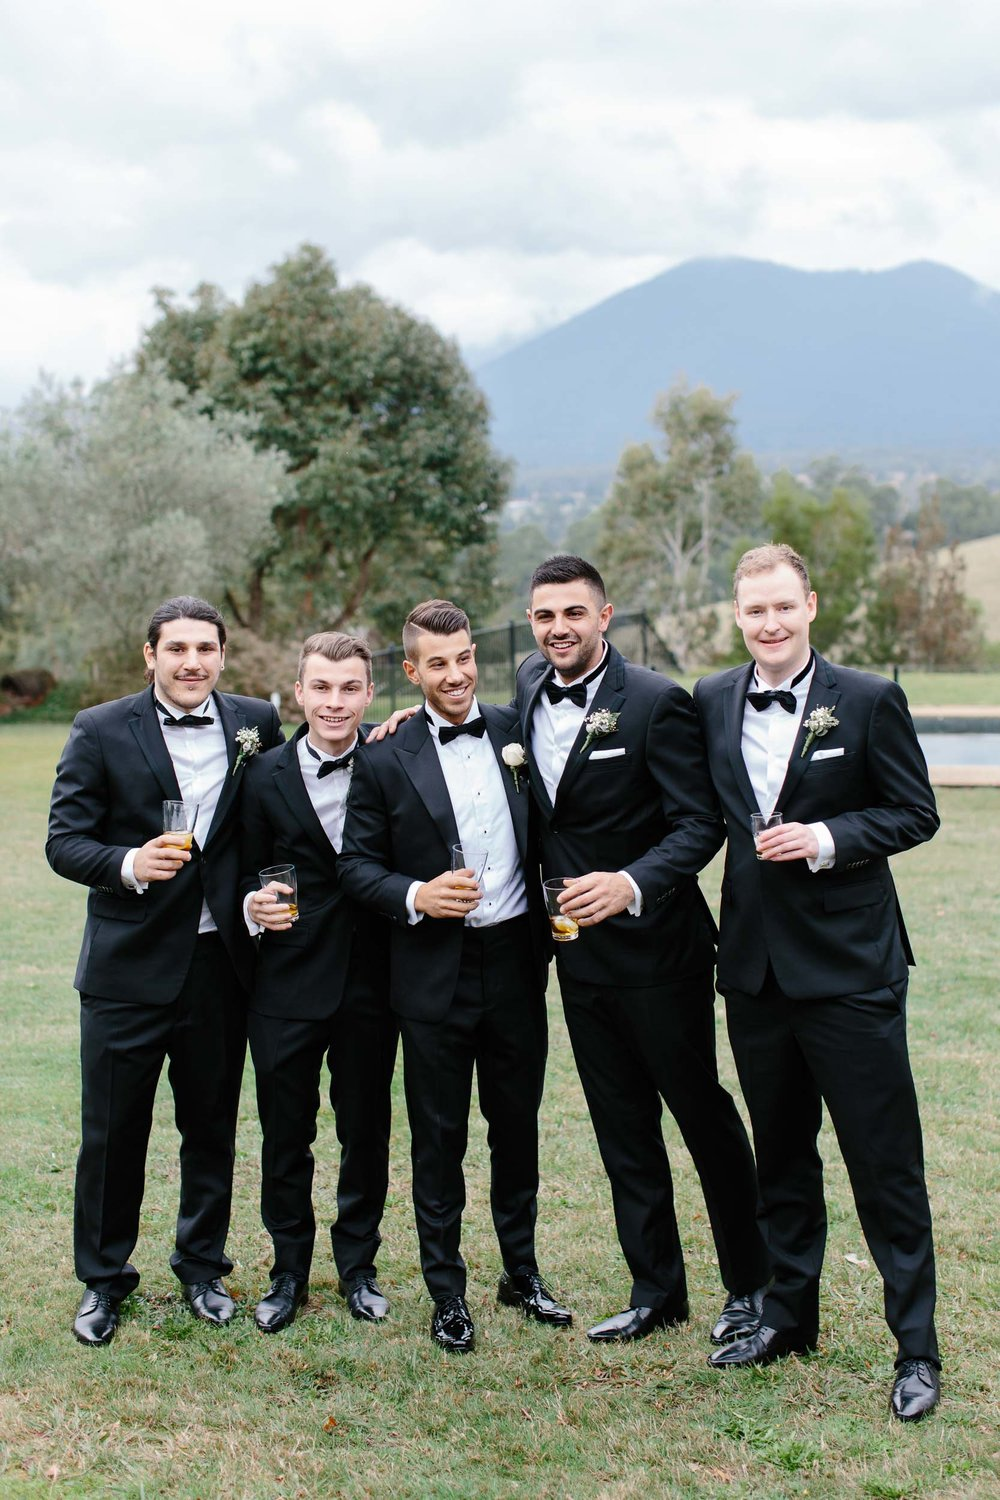 Kas-Richards-Stones-of-the-Yarra-Valley-Wedding-Jaton-Couture-Oscar-Hunt-Tailors-12.jpg